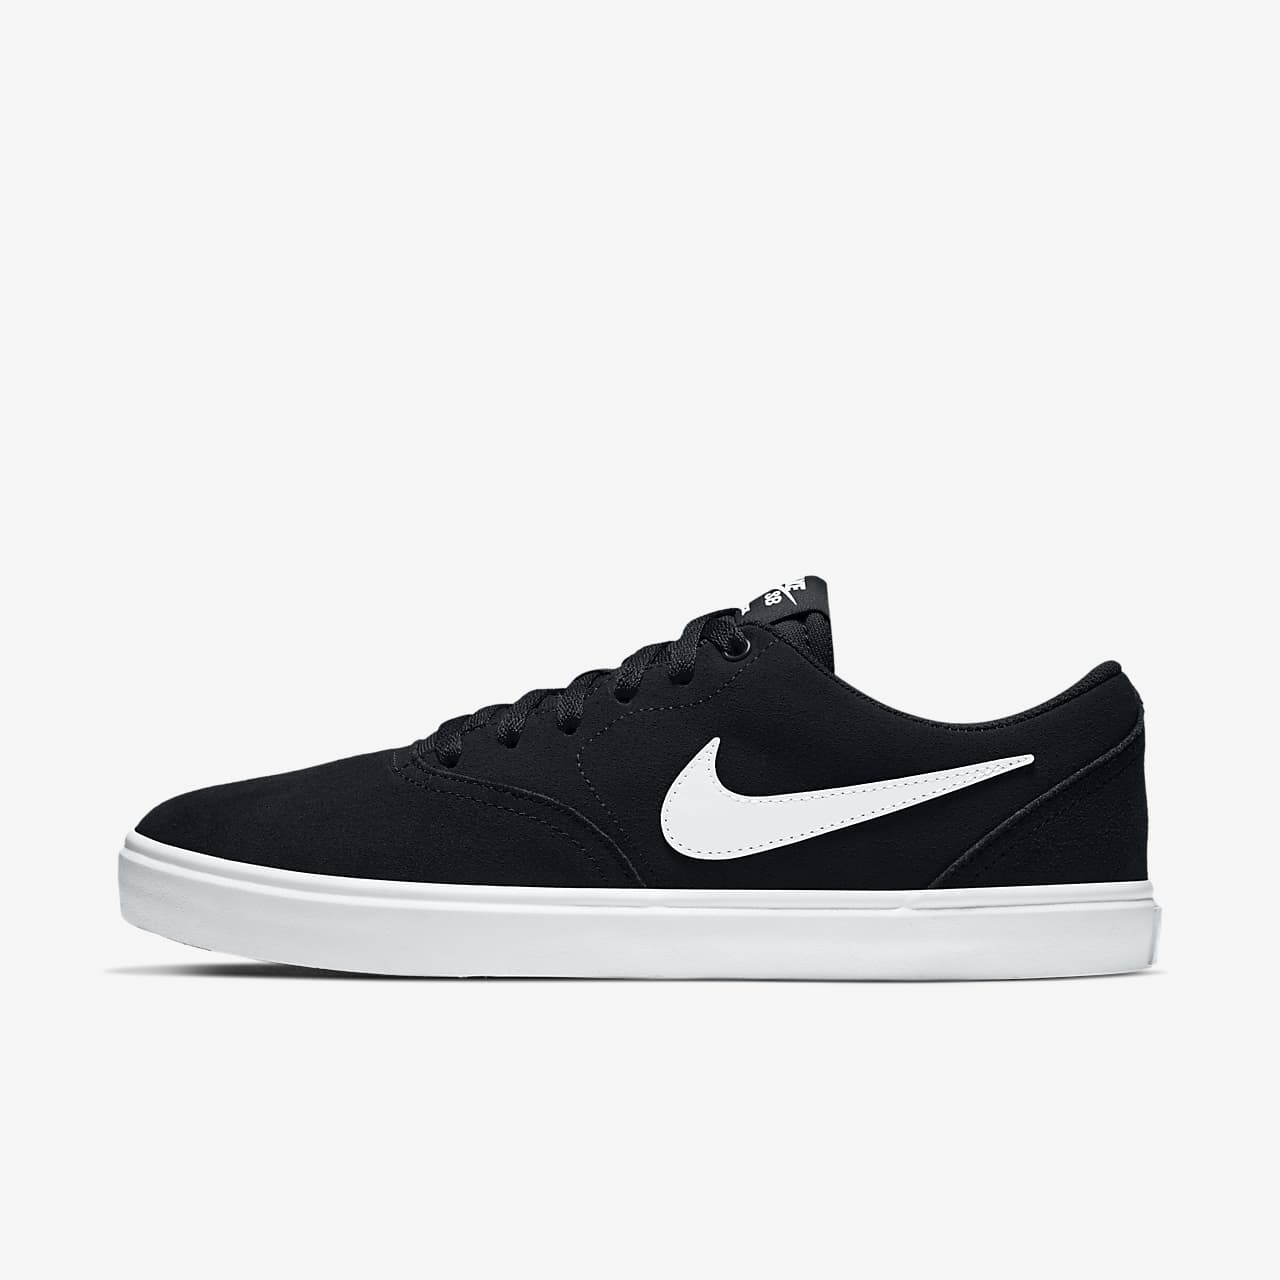 Noir Chaussures Nike Sb Collection Taille 44 Hommes i2ssk